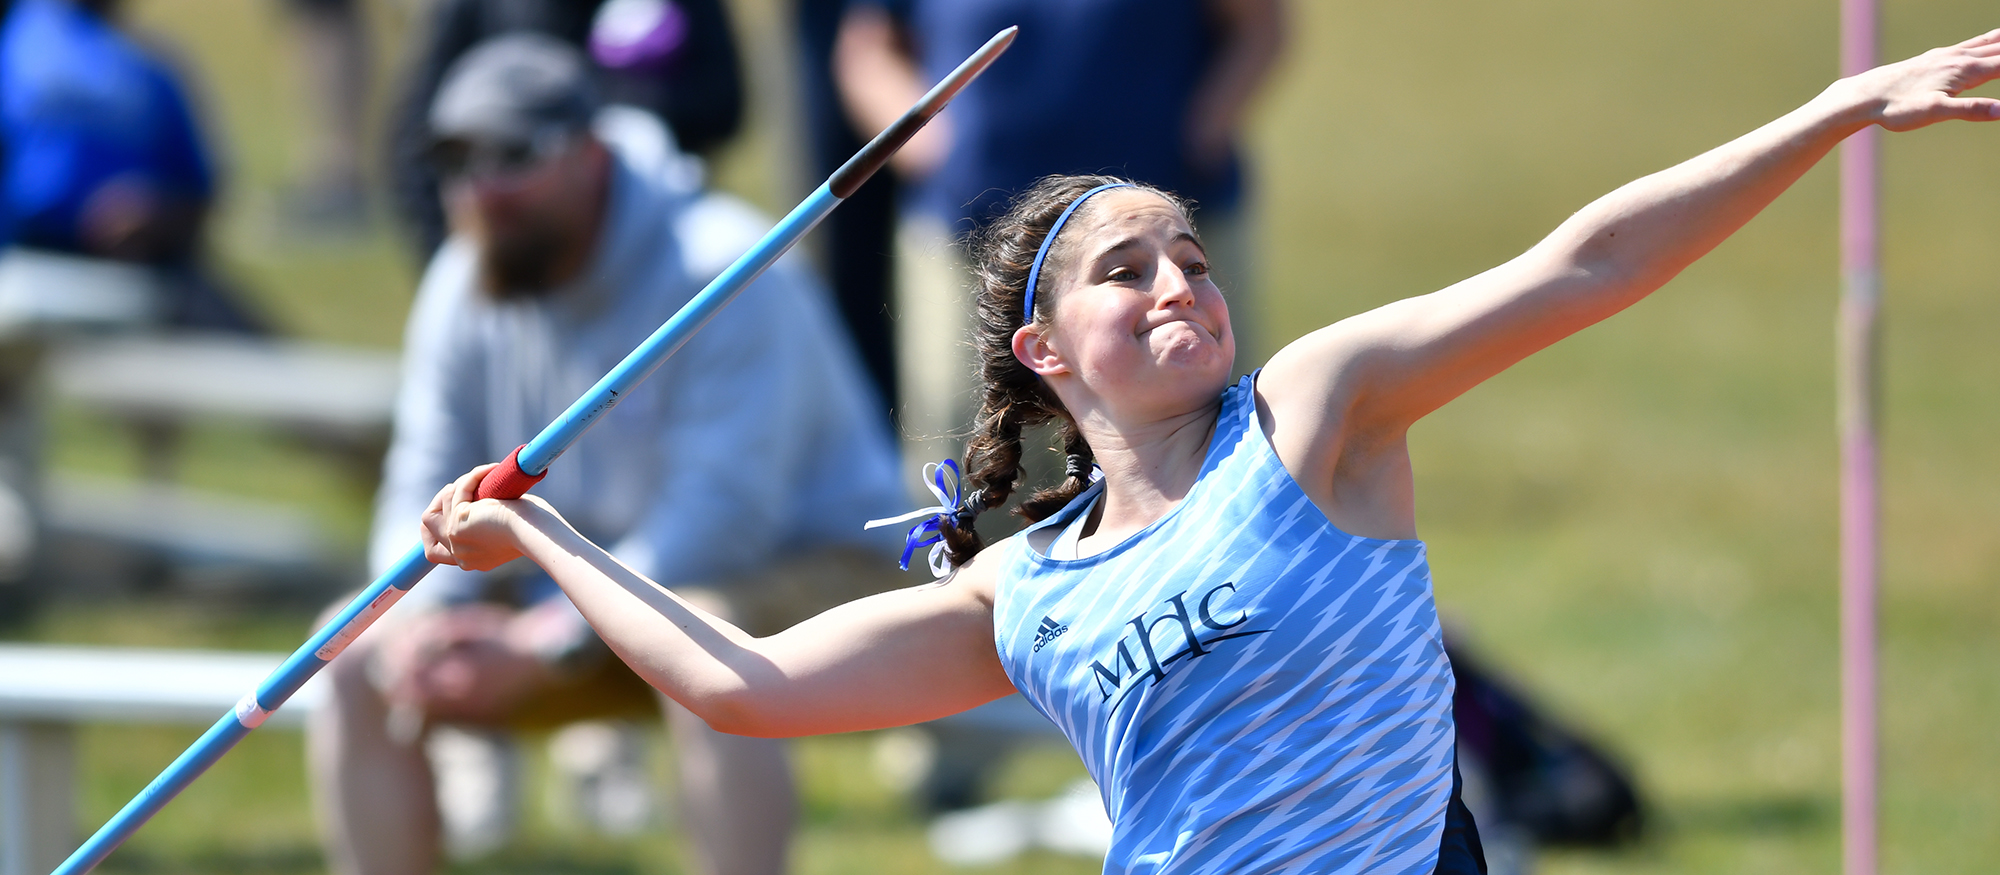 Action photo of Lyons track & field athlete, Ireland Clare Kennedy competing in the javelin.